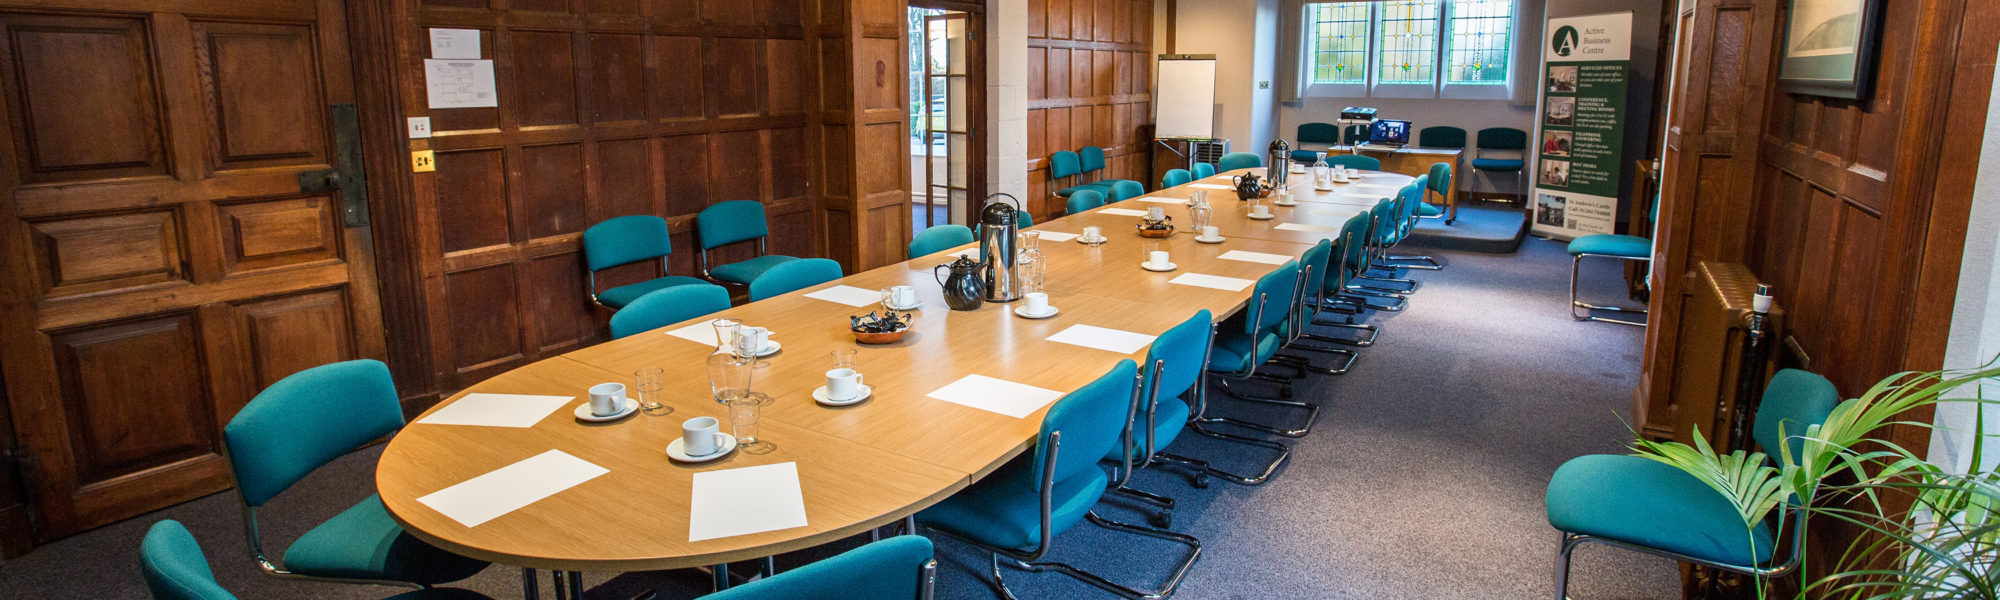 Conference Venue Amp Meeting Rooms In Bury St Edmunds Suffolk